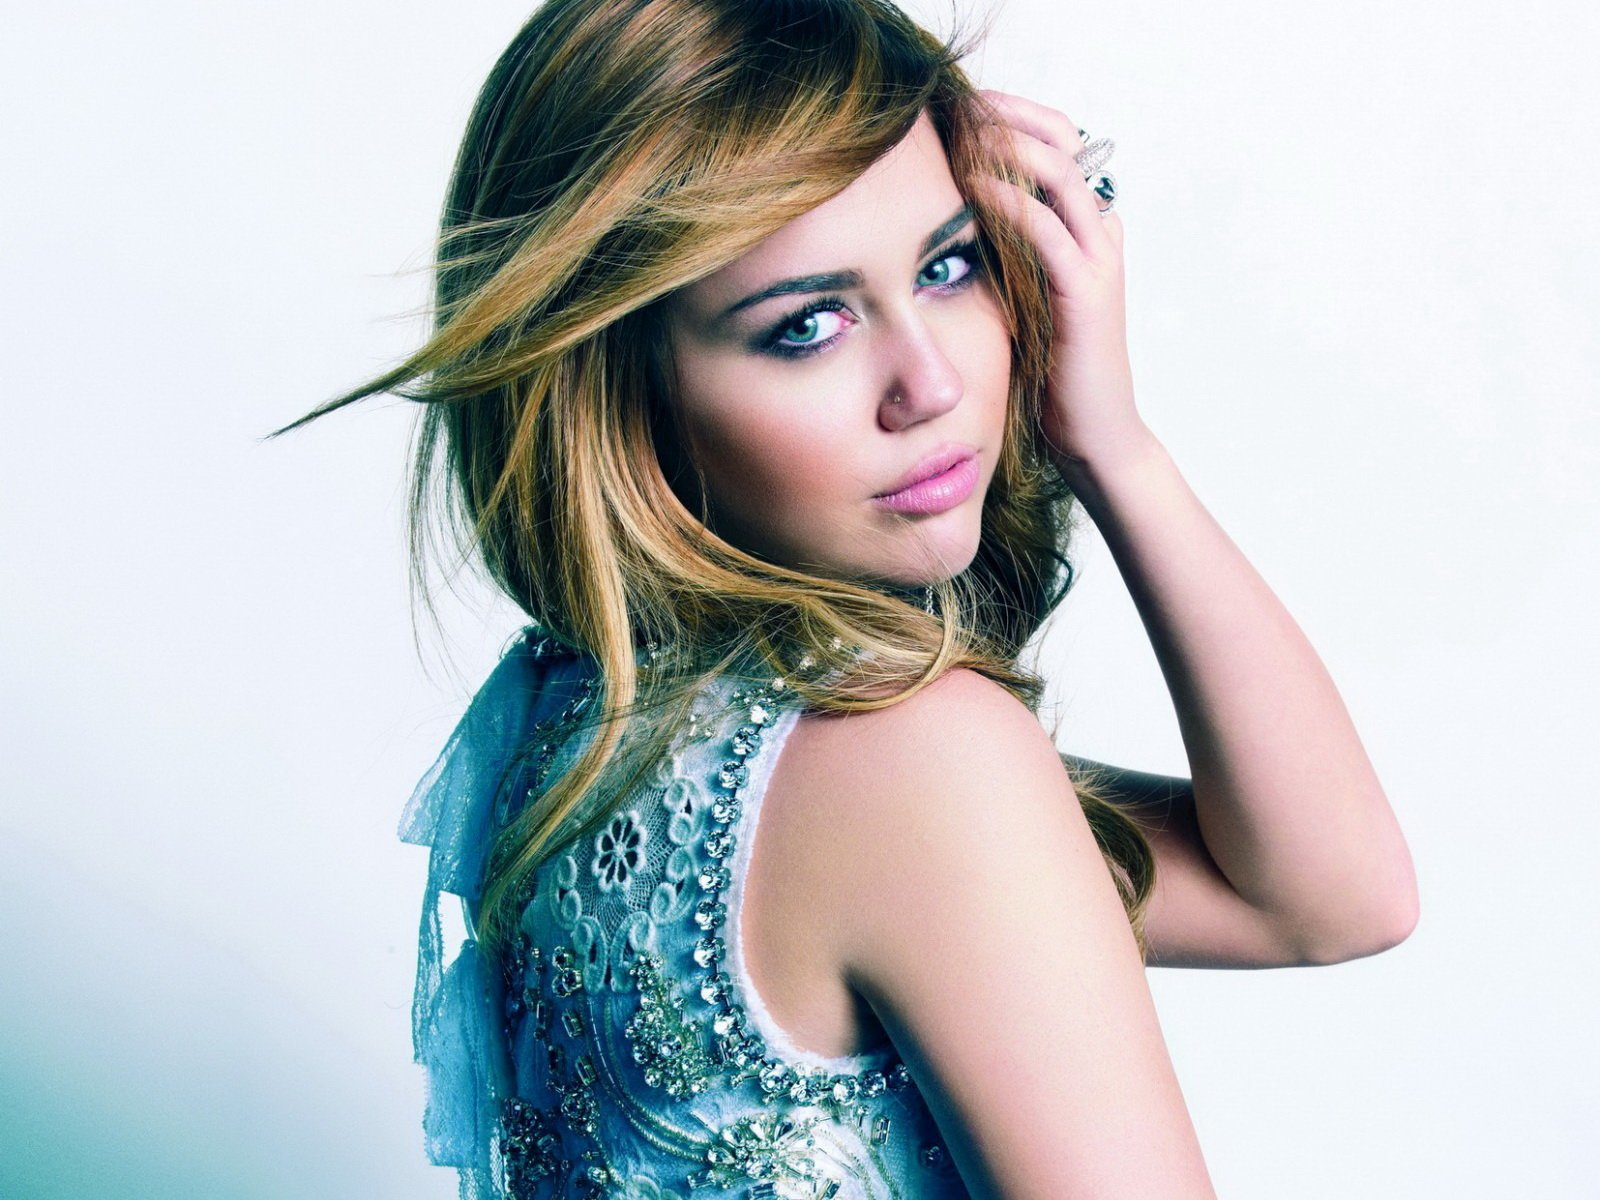 miley cyrus wallpaper 2013 miley cyrus wallpaper 2013 miley cyrus 1600x1200